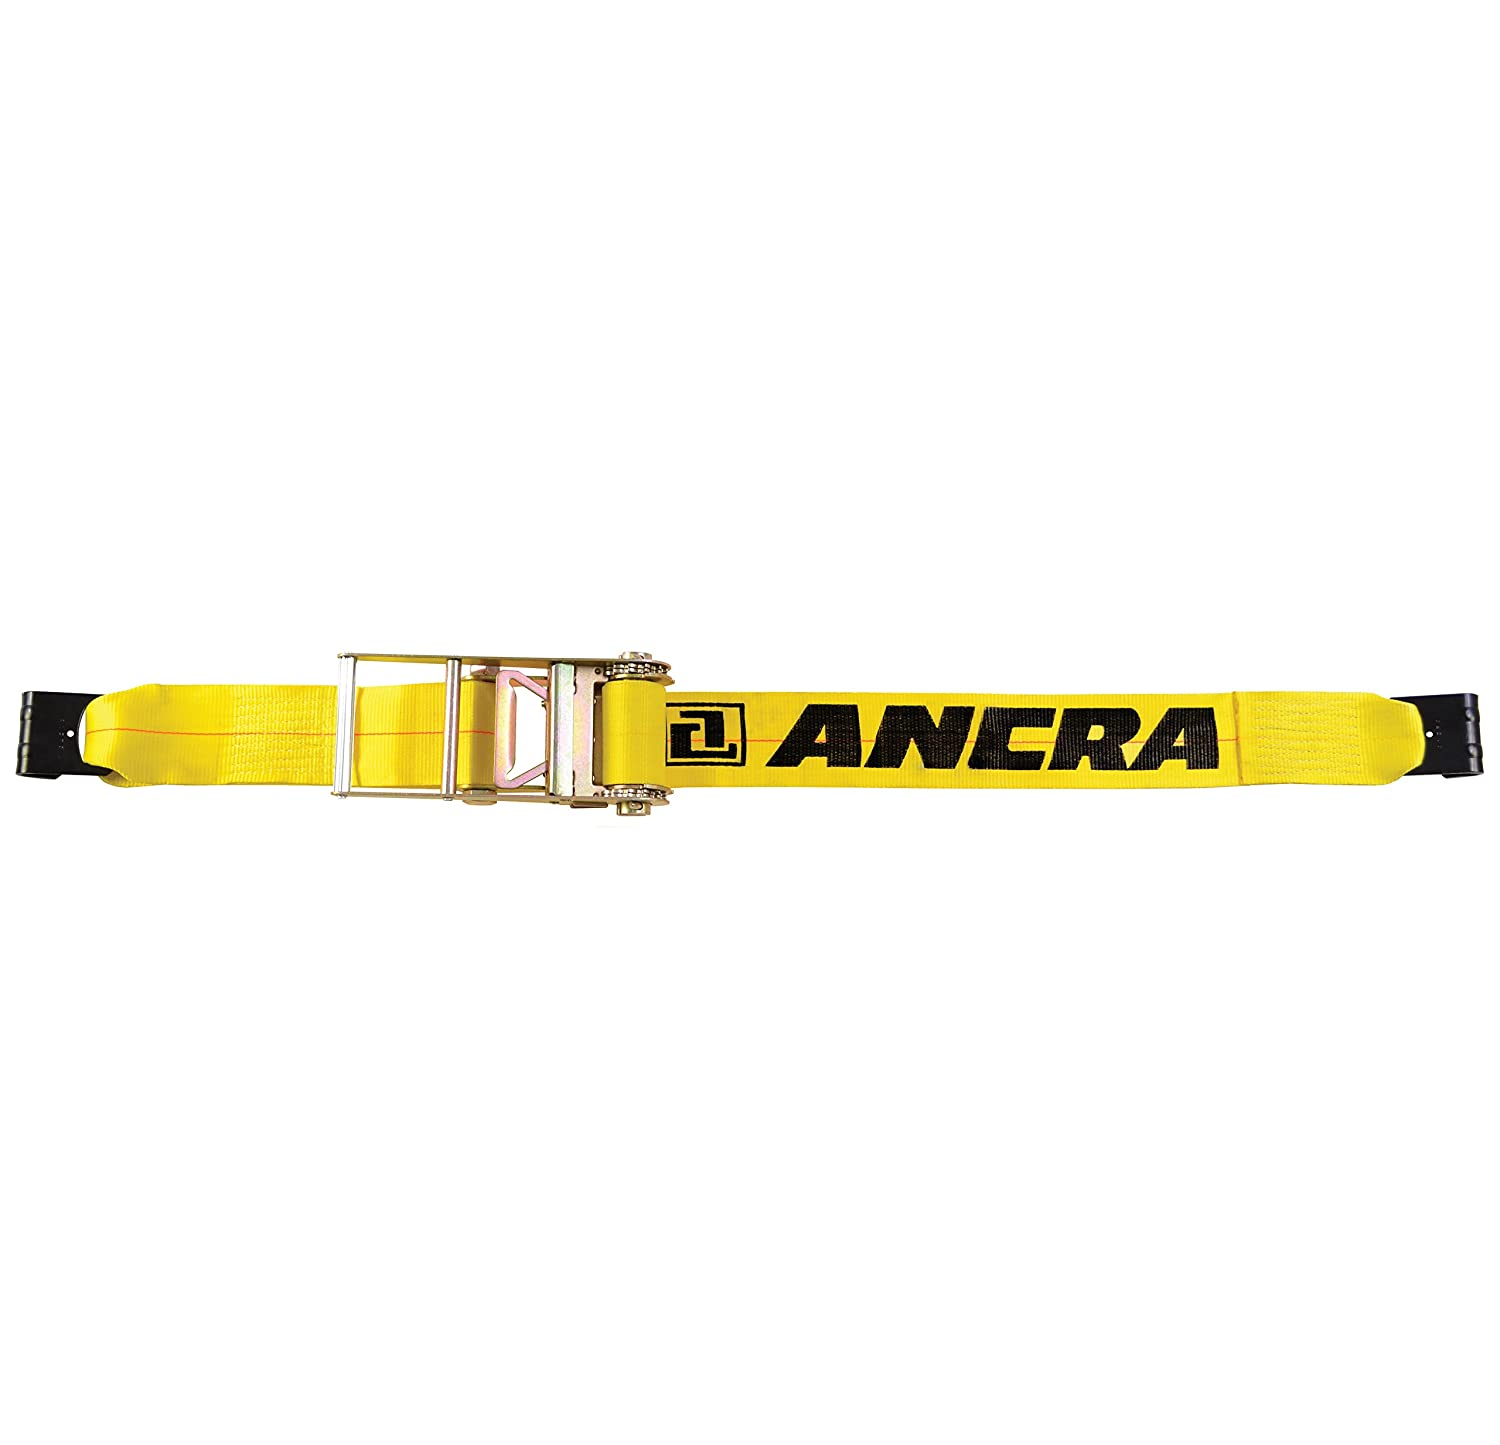 5,400-Pounds Working Load Limit Ancra 49346-11 Ratchet Tie Down with Flat Hooks 4-Inch by 30-Feet